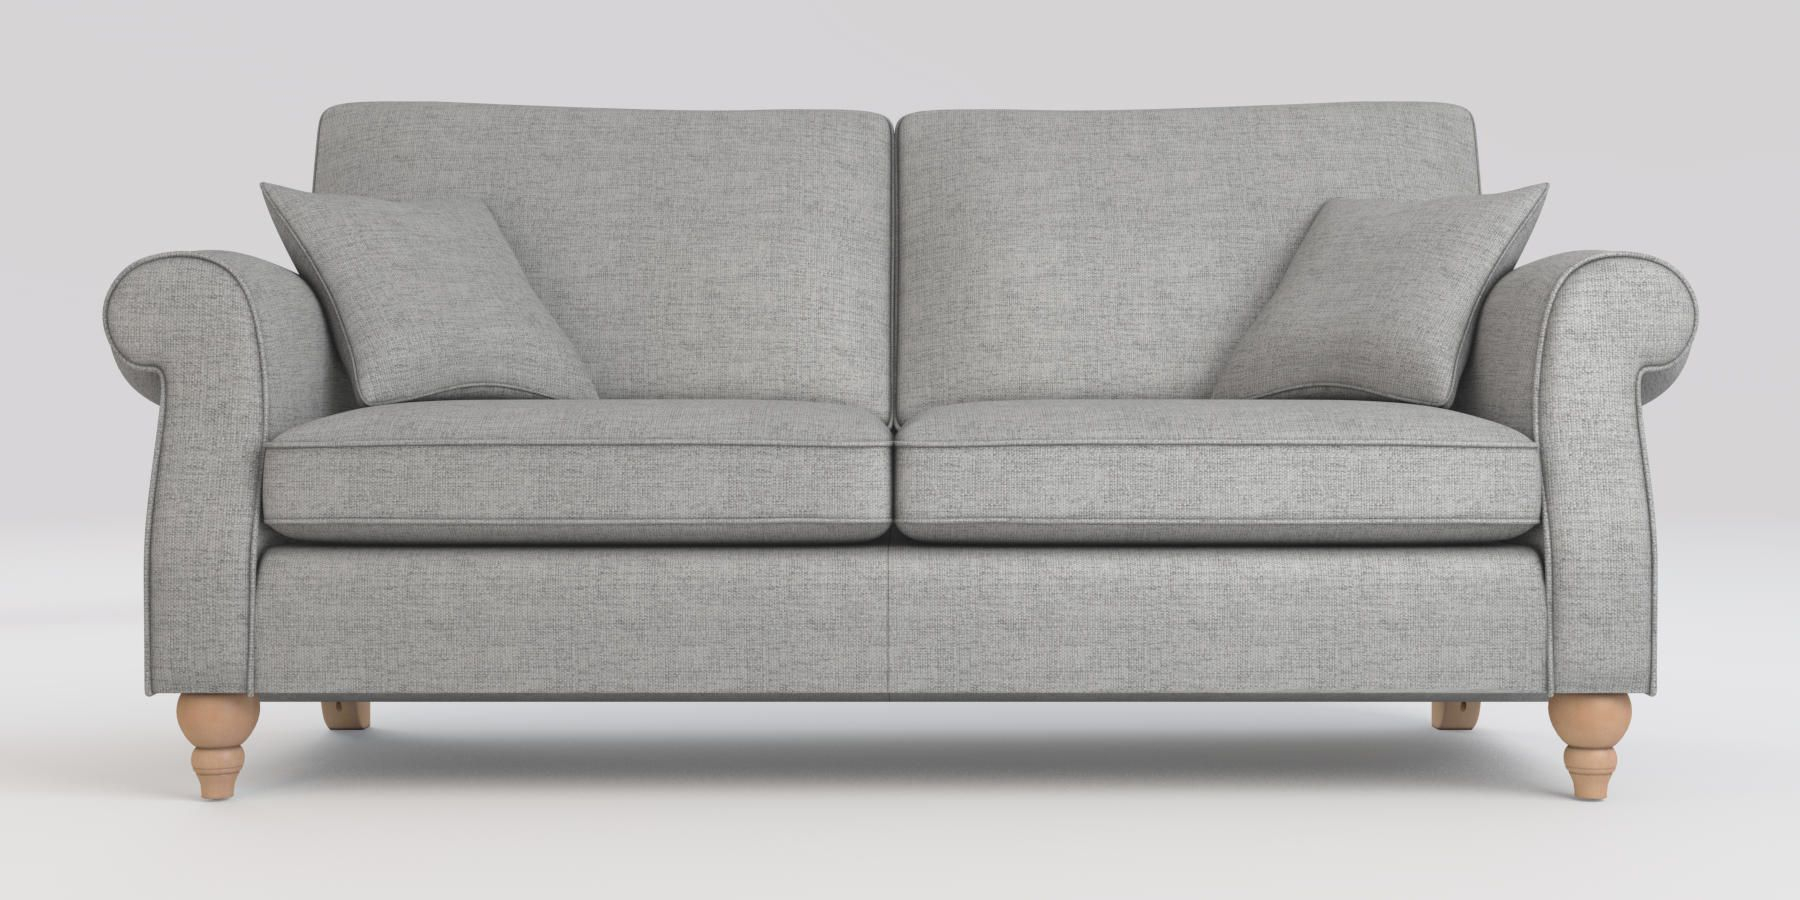 Buy Ashford Firm Sit Large Sofa (3 Seats) Textured Weave For Calvin Concrete Gray Sofas (View 13 of 15)